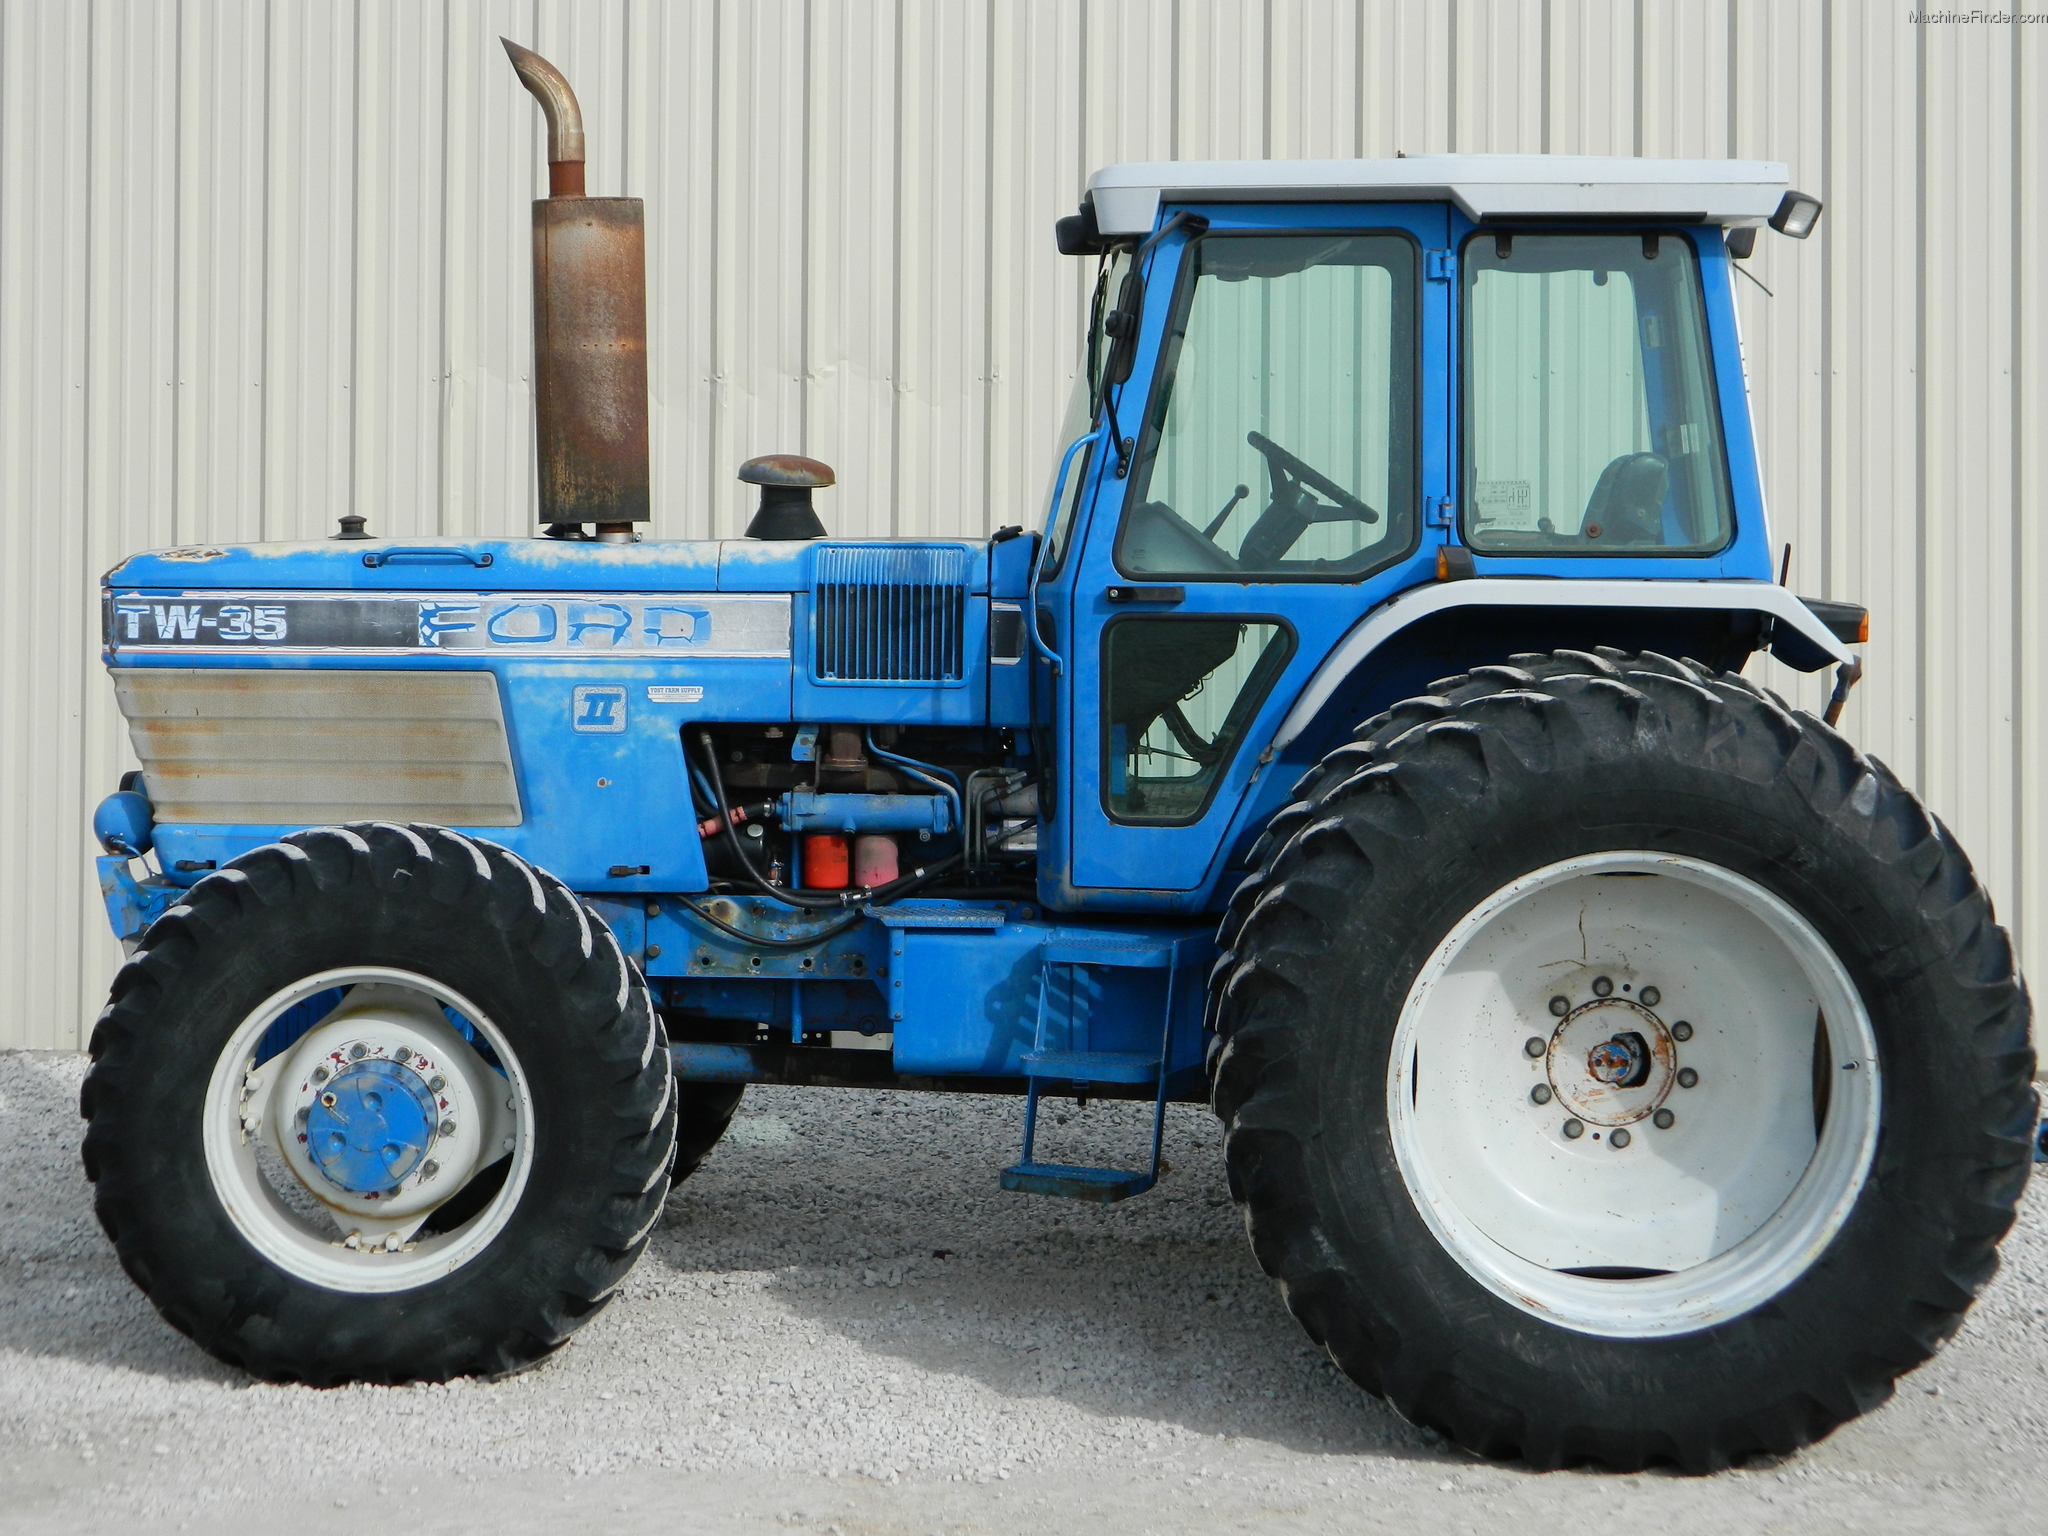 Ford Tw 35 Tractor Parts : Ford tw tractors row crop hp john deere